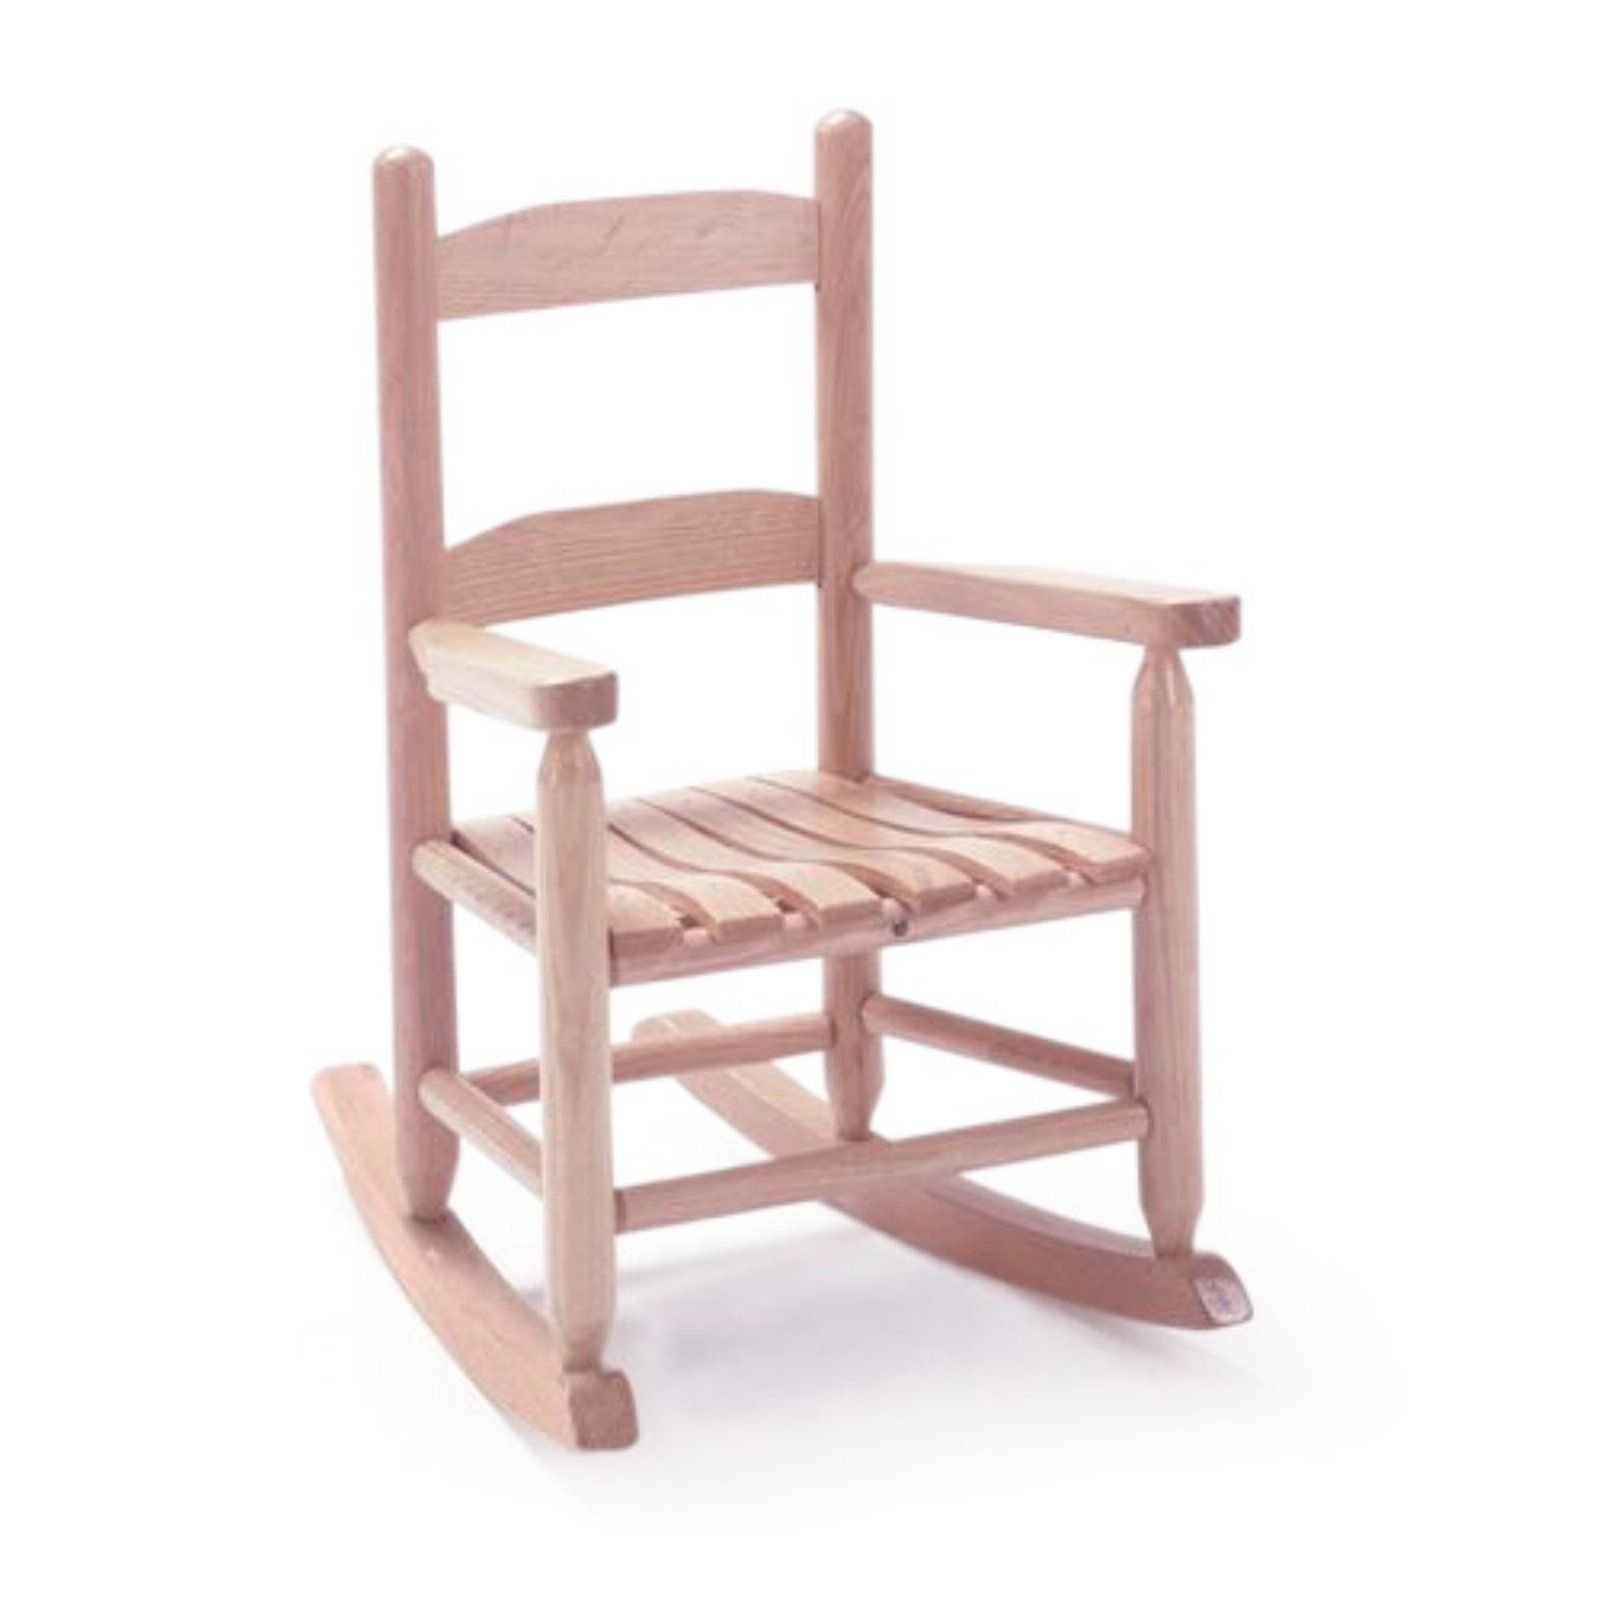 troutman chair company outdoor chairs at walmart co baby elizabeth child s rocking red in 2019 medium oak